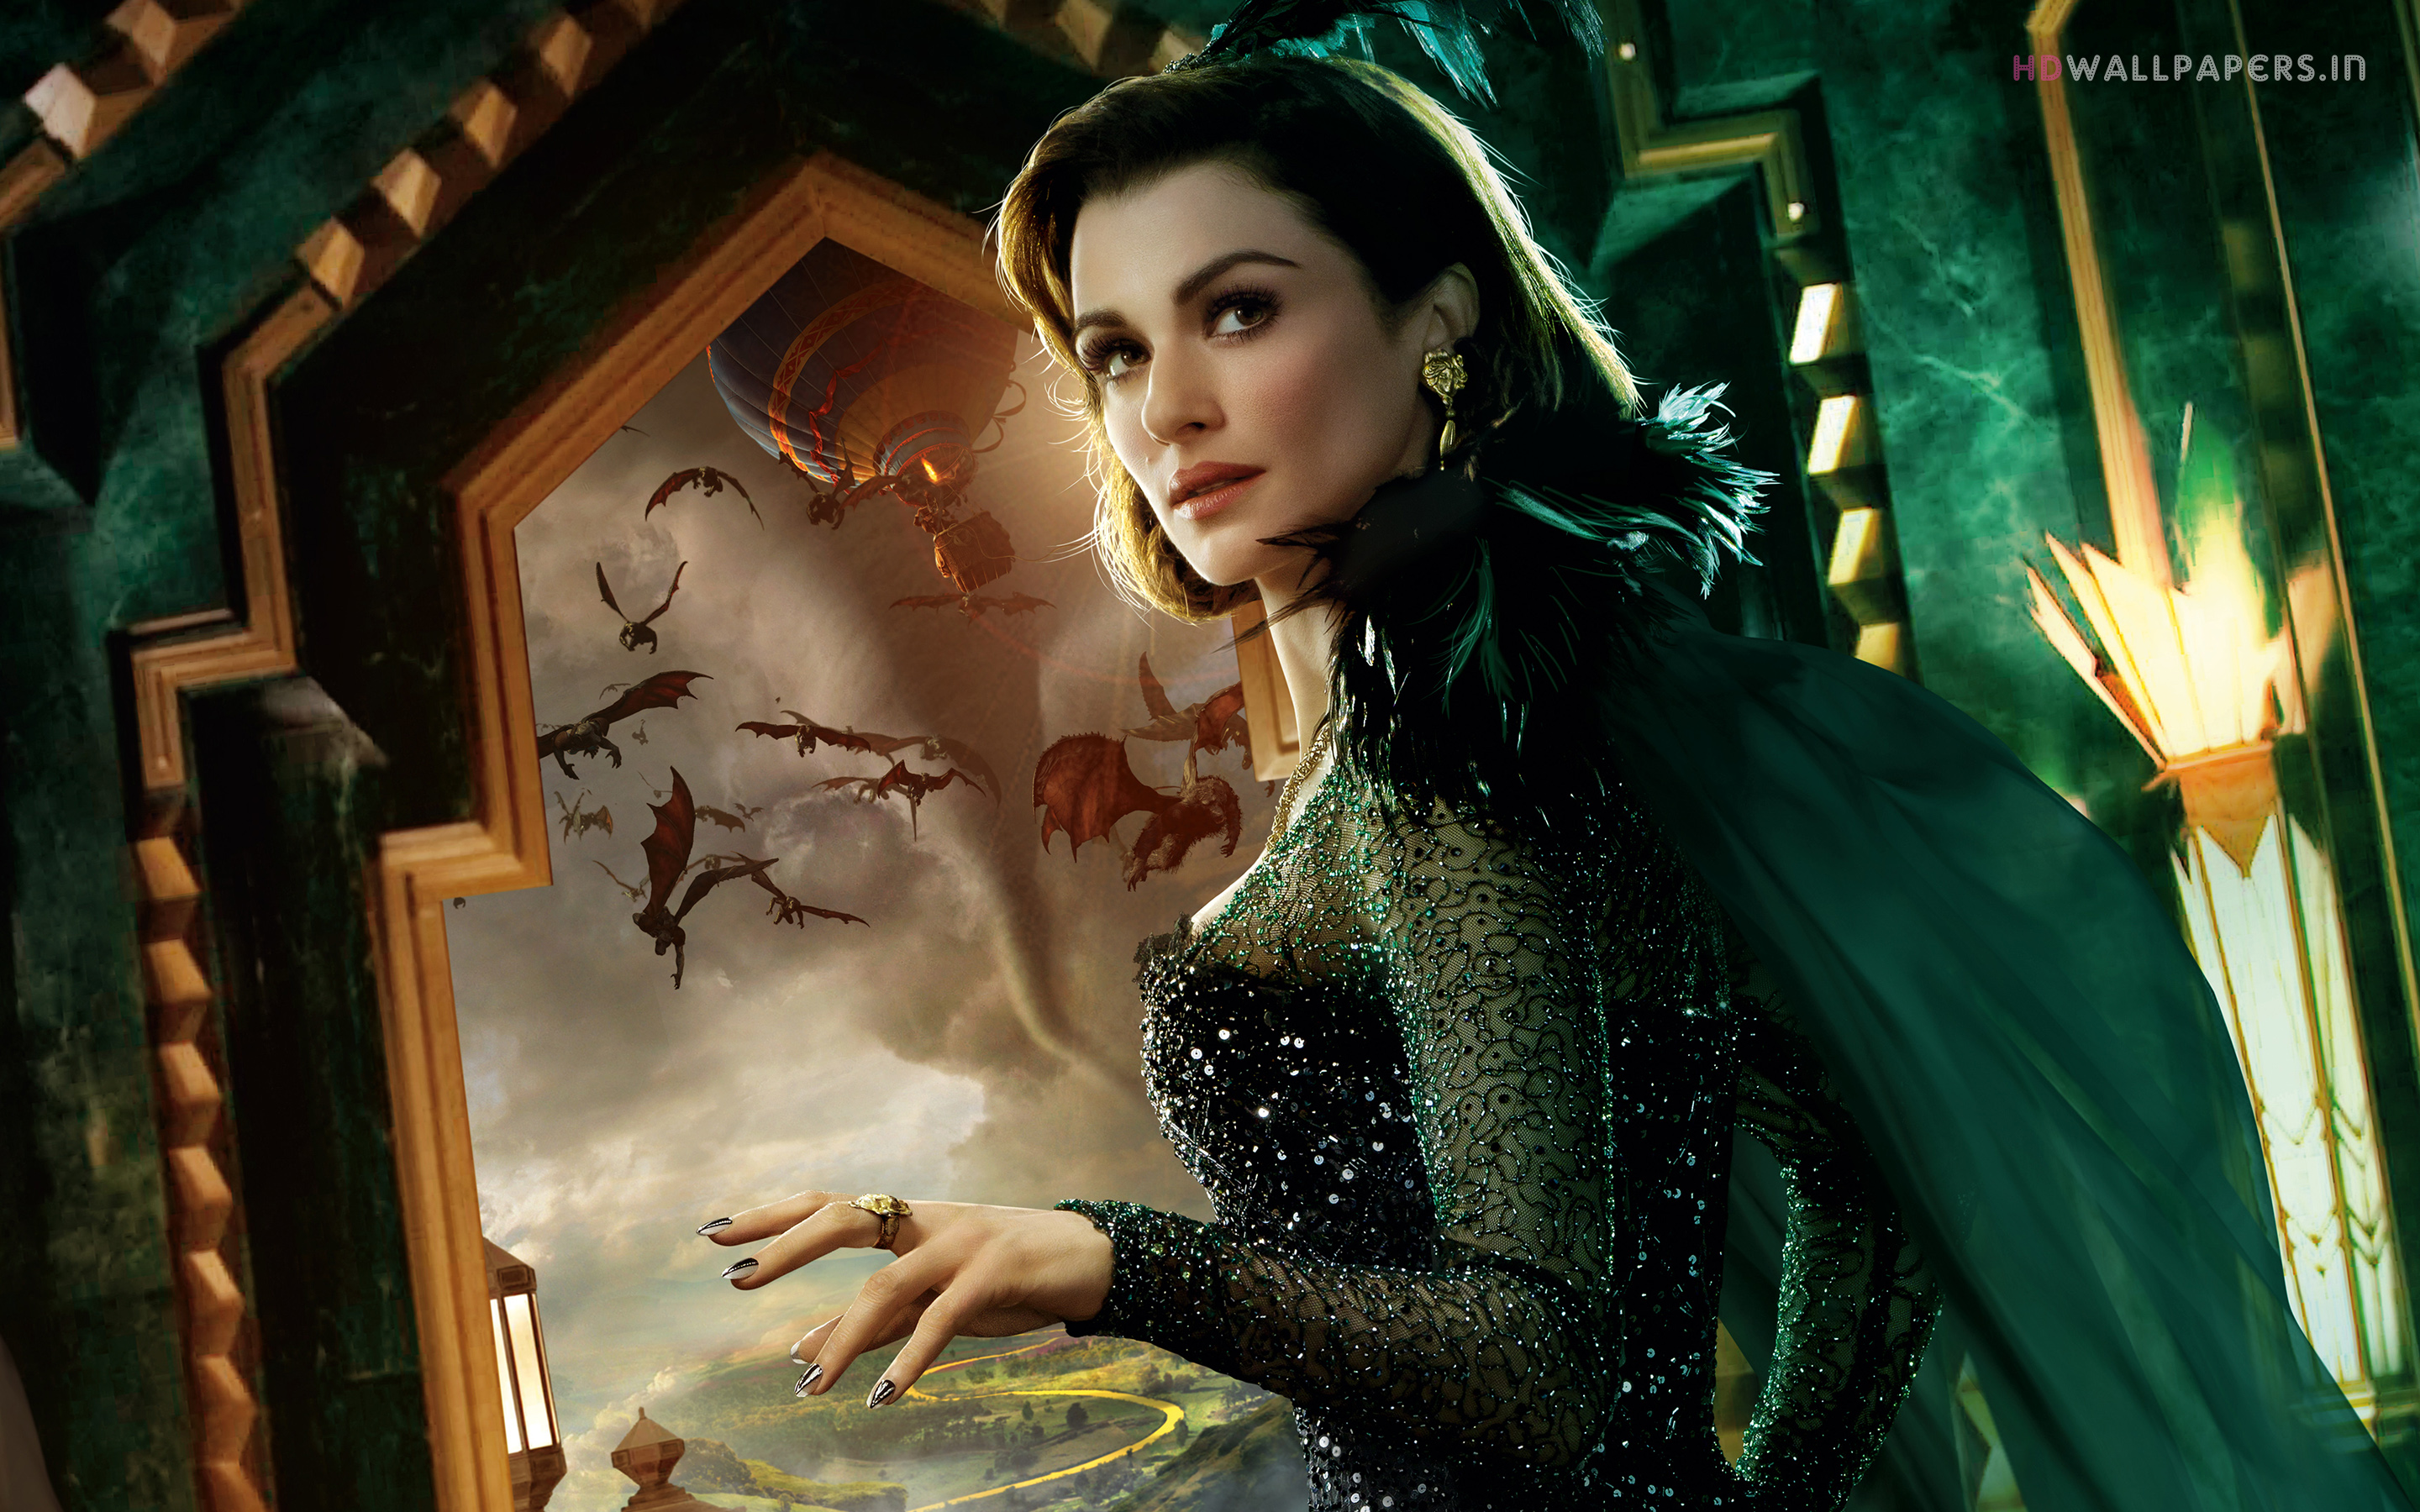 Rachel Weisz Oz the Great and Powerful 648.79 Kb